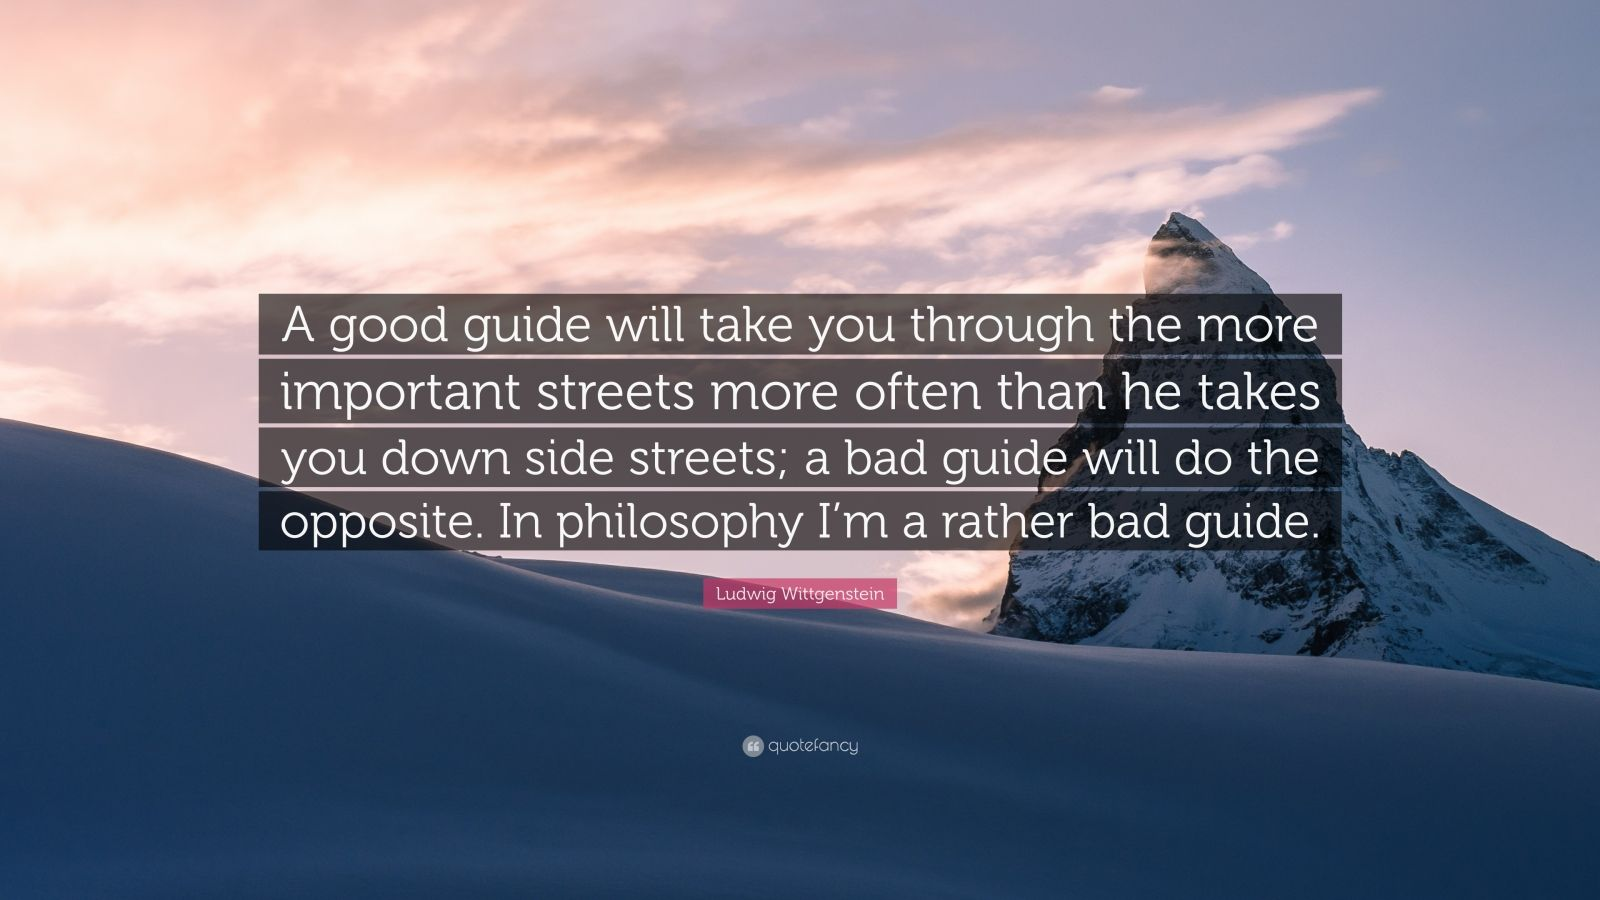 """Ludwig Wittgenstein Quote: """"A good guide will take you through the more important streets more often than he takes you down side streets; a bad guide will do the opposite. In philosophy I'm a rather bad guide."""""""